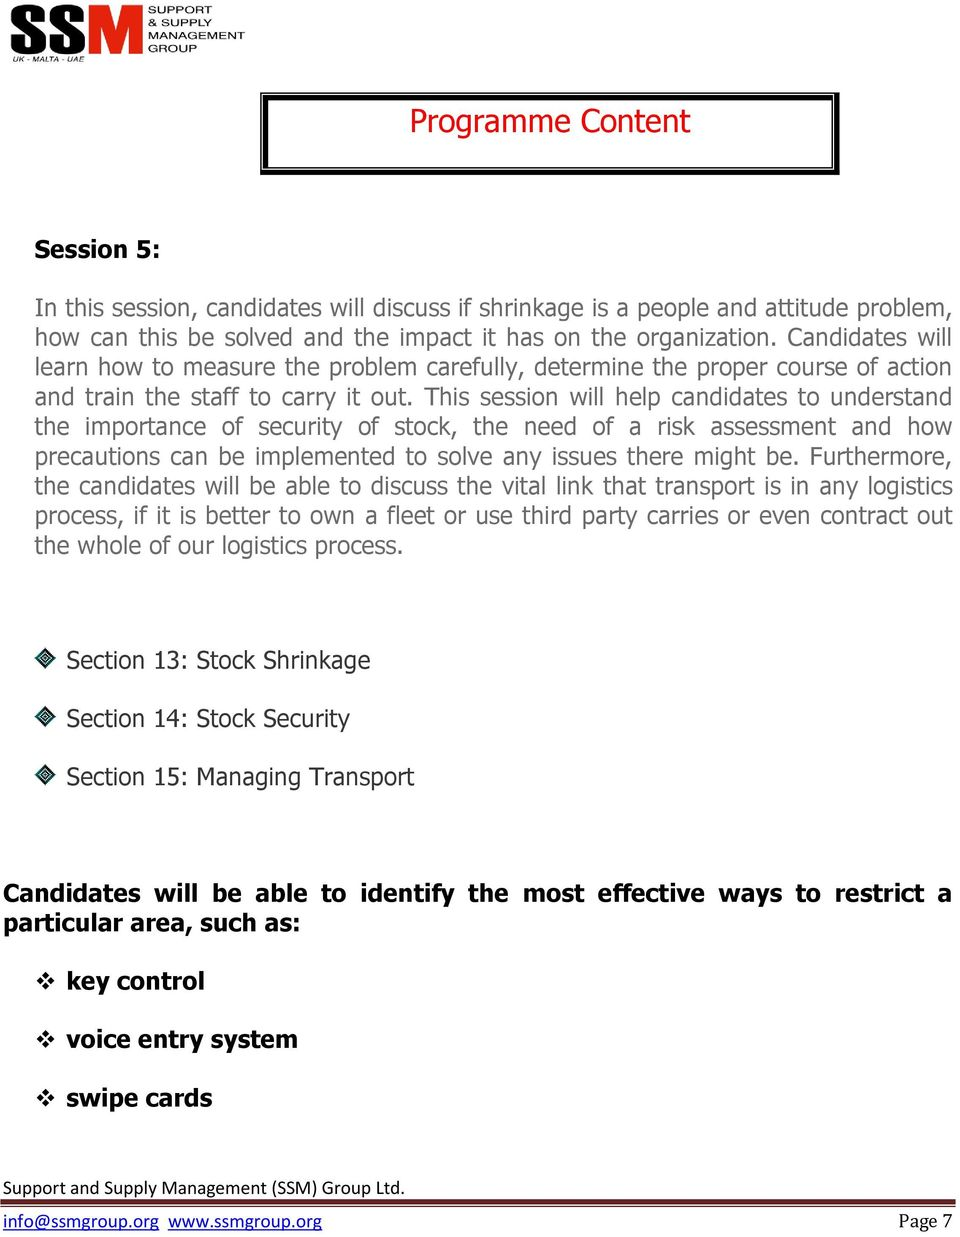 This session will help candidates to understand the importance of security of stock, the need of a risk assessment and how precautions can be implemented to solve any issues there might be.